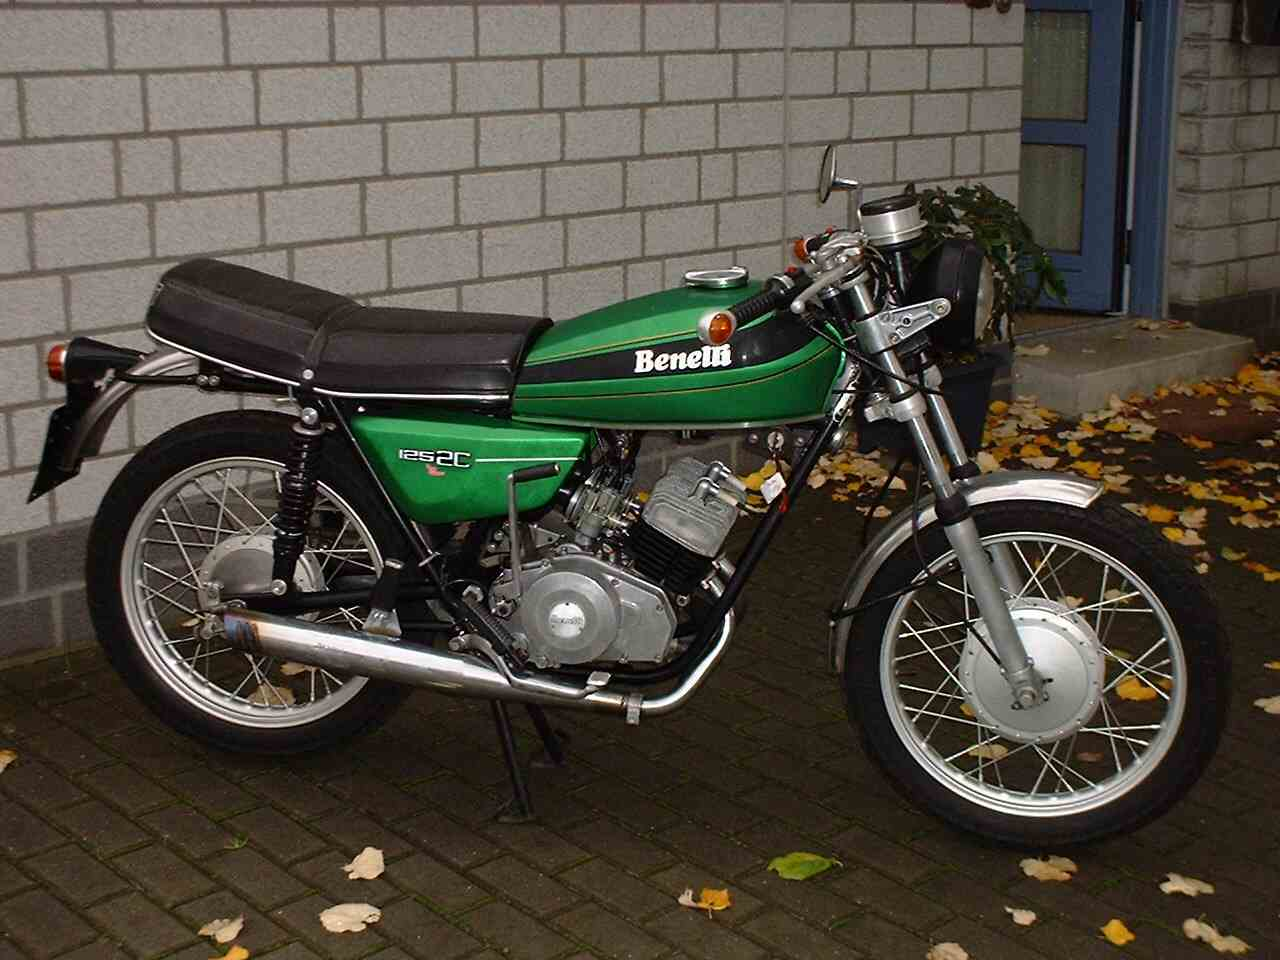 Benelli 125 Sport 1988 images #76321